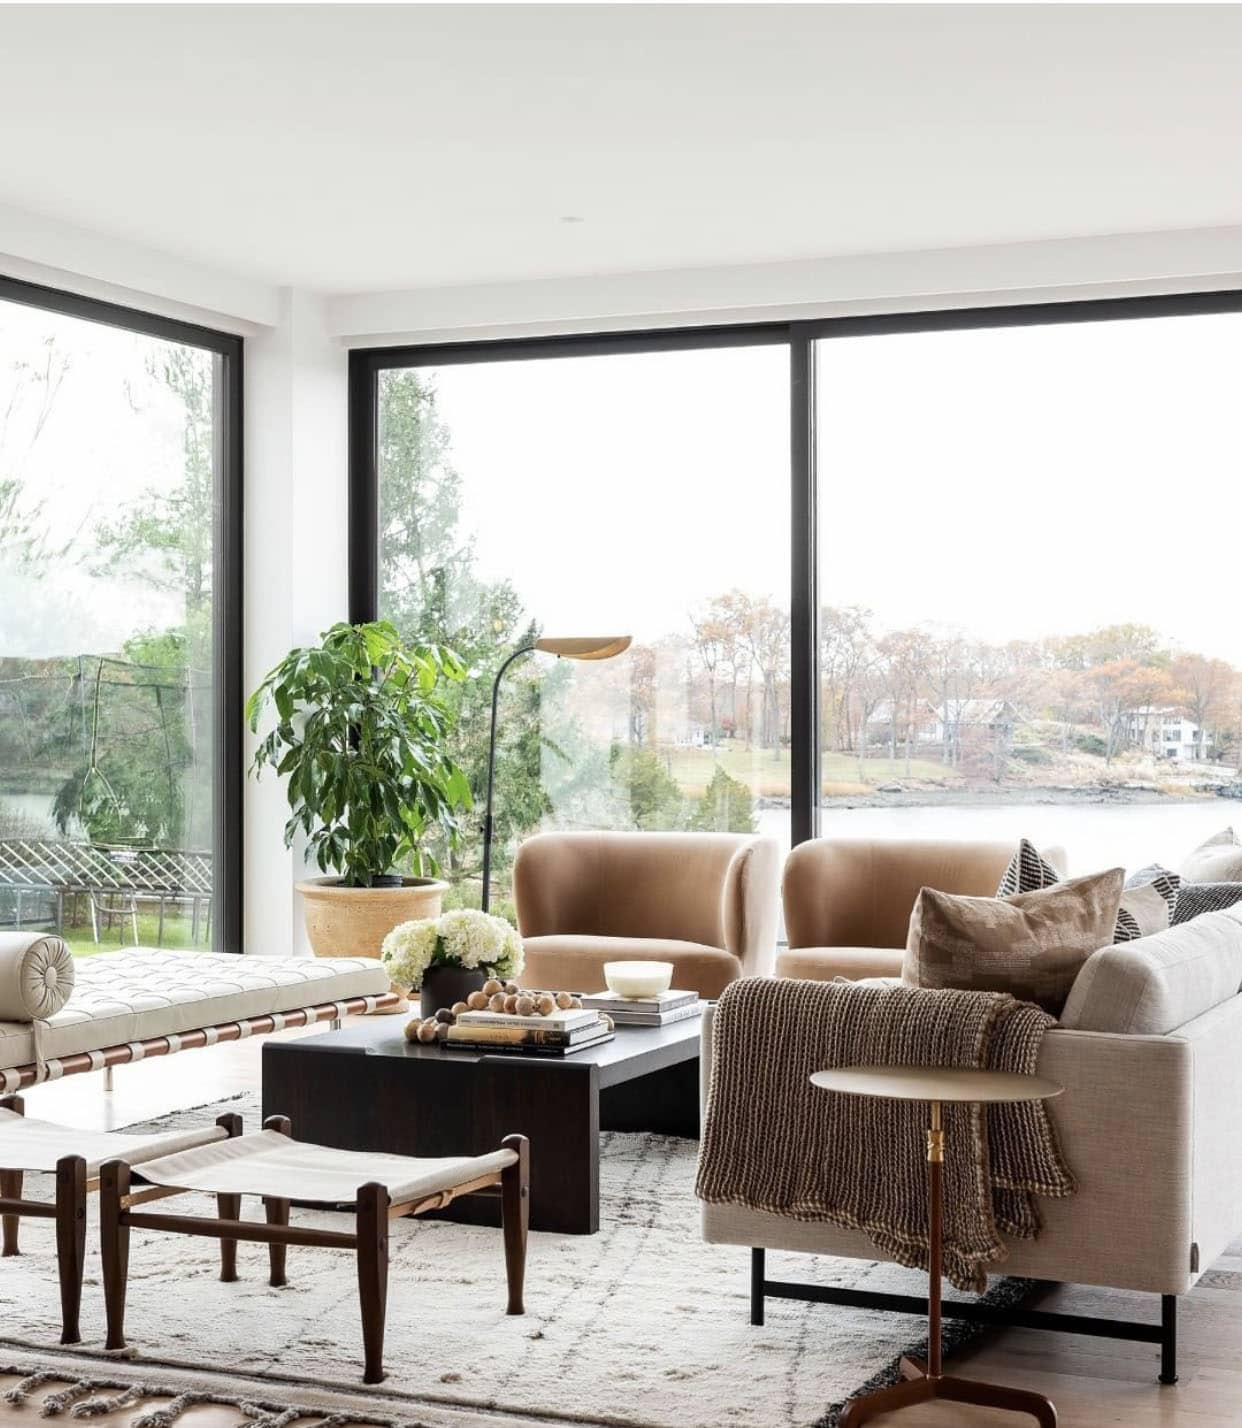 How to figure out your furniture layout in a living room space